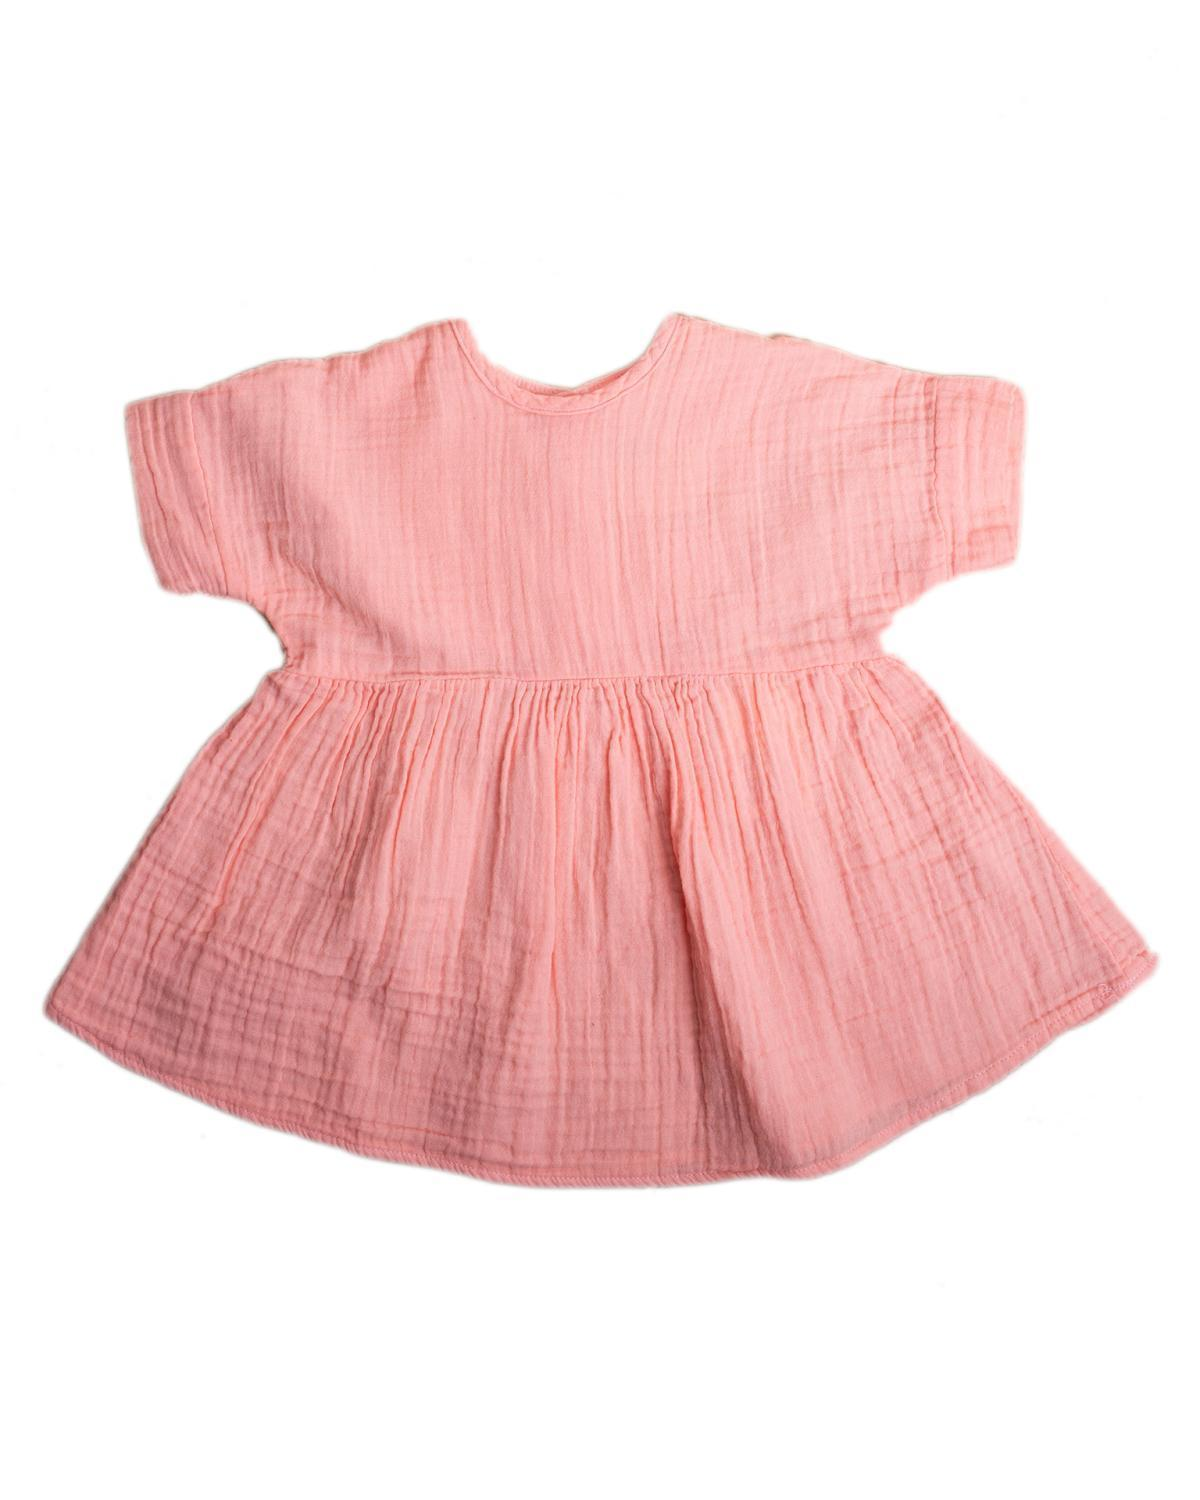 Little boy + girl baby girl 0-6 baby una dress in guava